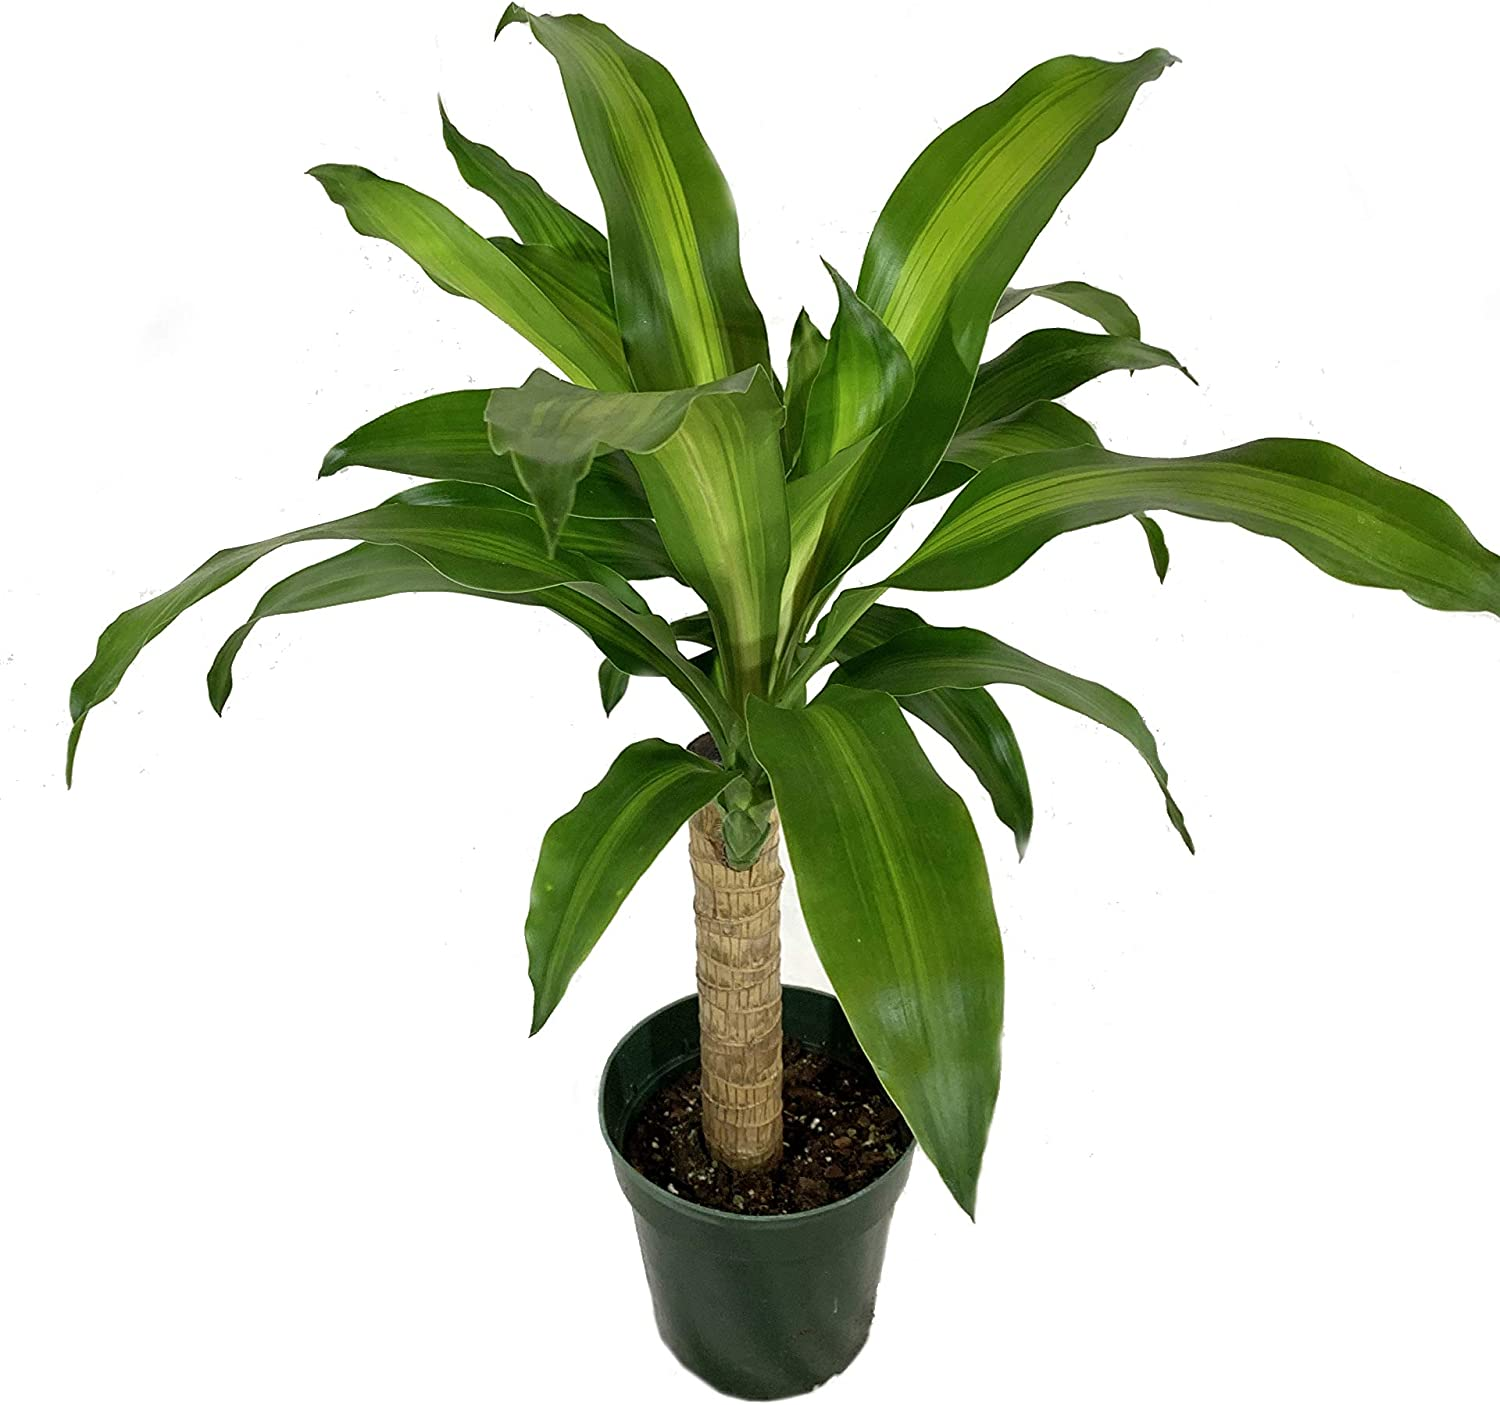 Amazon.com : Dracaena Mass Cane Corn Plant - Live Plant in a 6 Inch Pot -  Dracaena Fragrans - Beautiful Easy Care Air Purifying Indoor Houseplant :  Garden & Outdoor